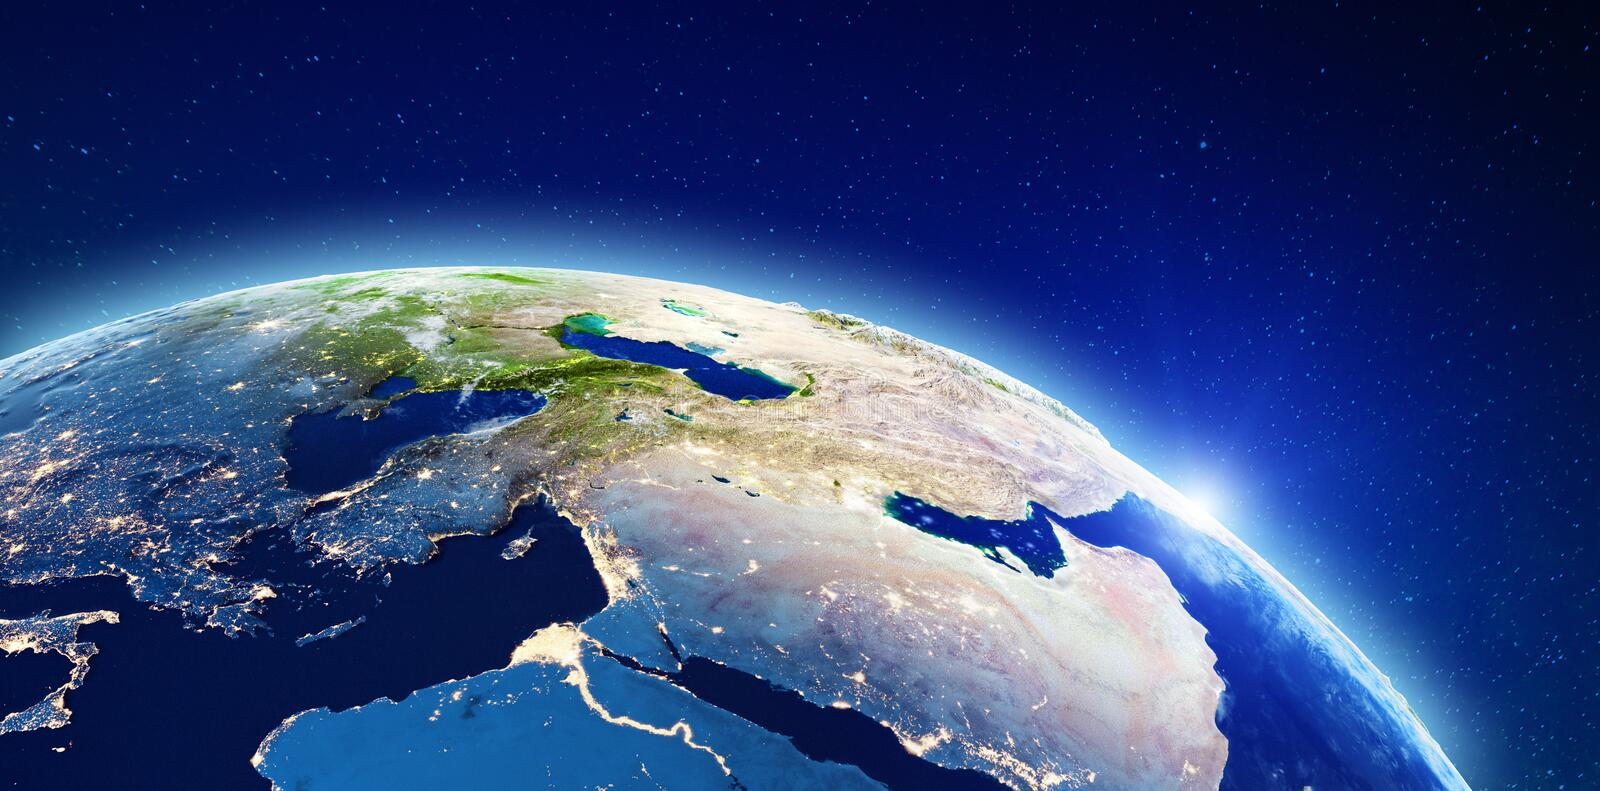 Middle East and Mediterranean royalty free stock image